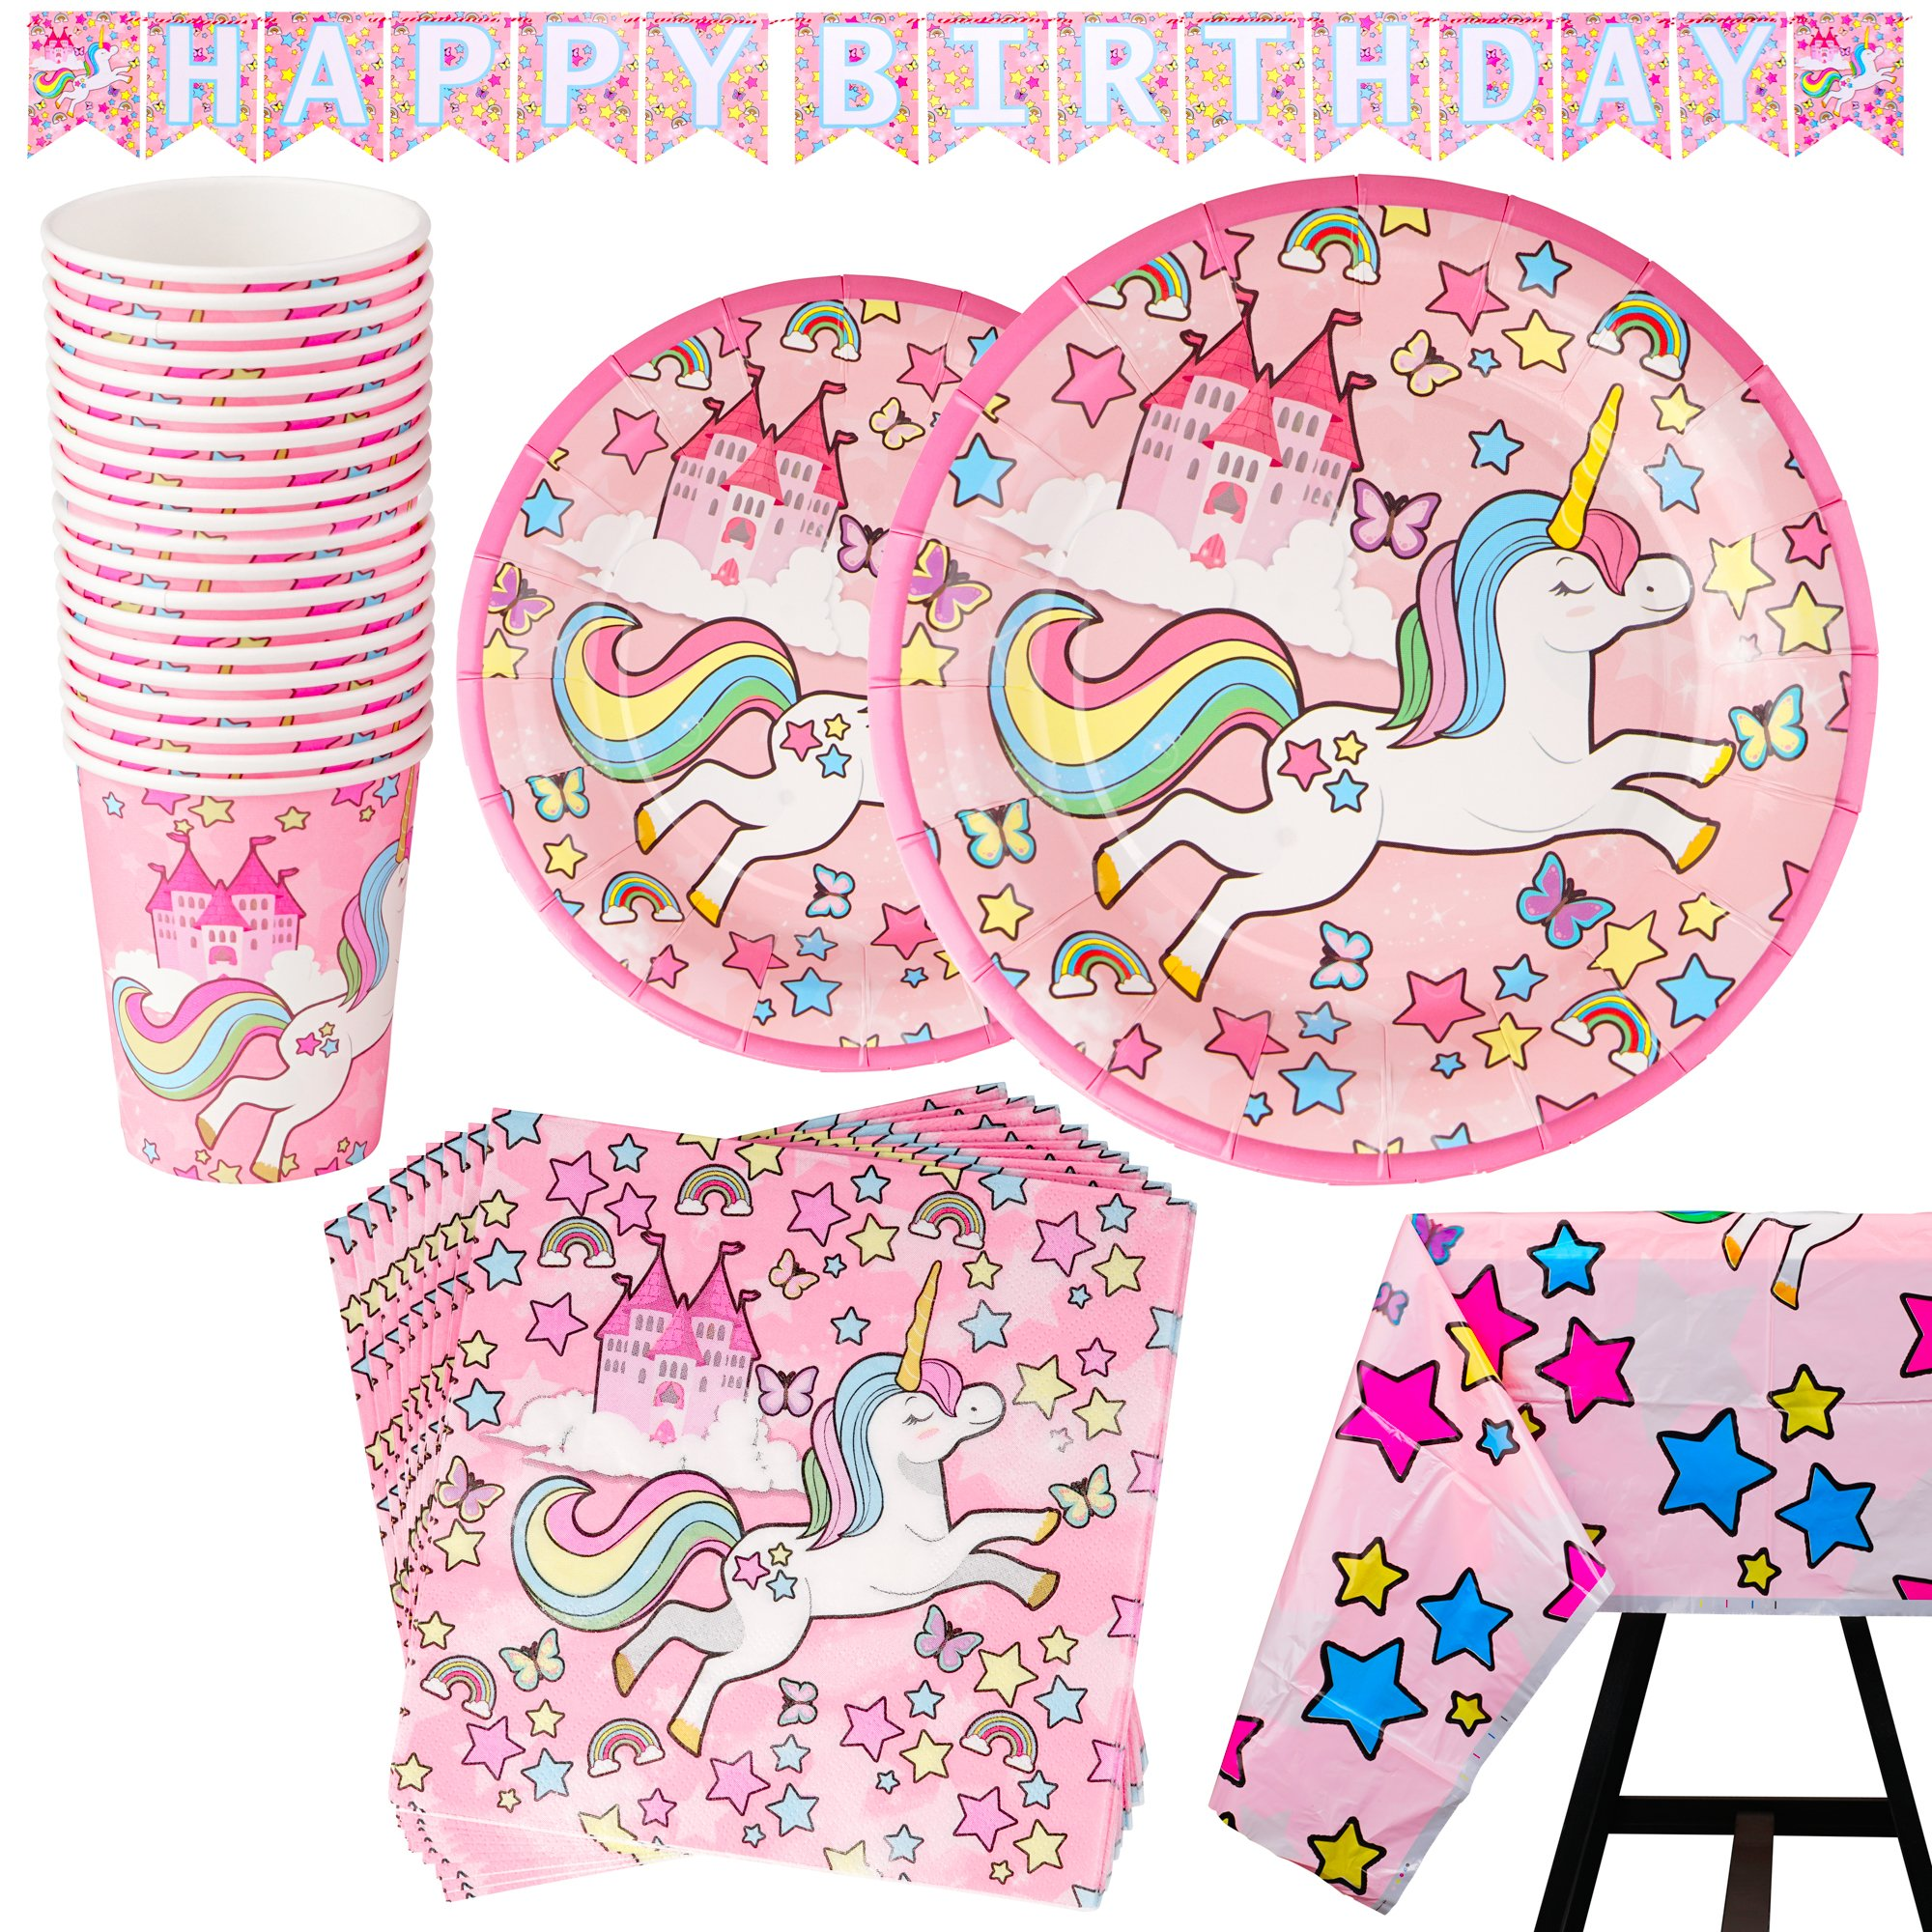 82 Piece Unicorn Party Supplies Set Including Banner, Plates, Cups, Napkins and Tablecloth - Pink Theme, Serves 20 by Scale Rank